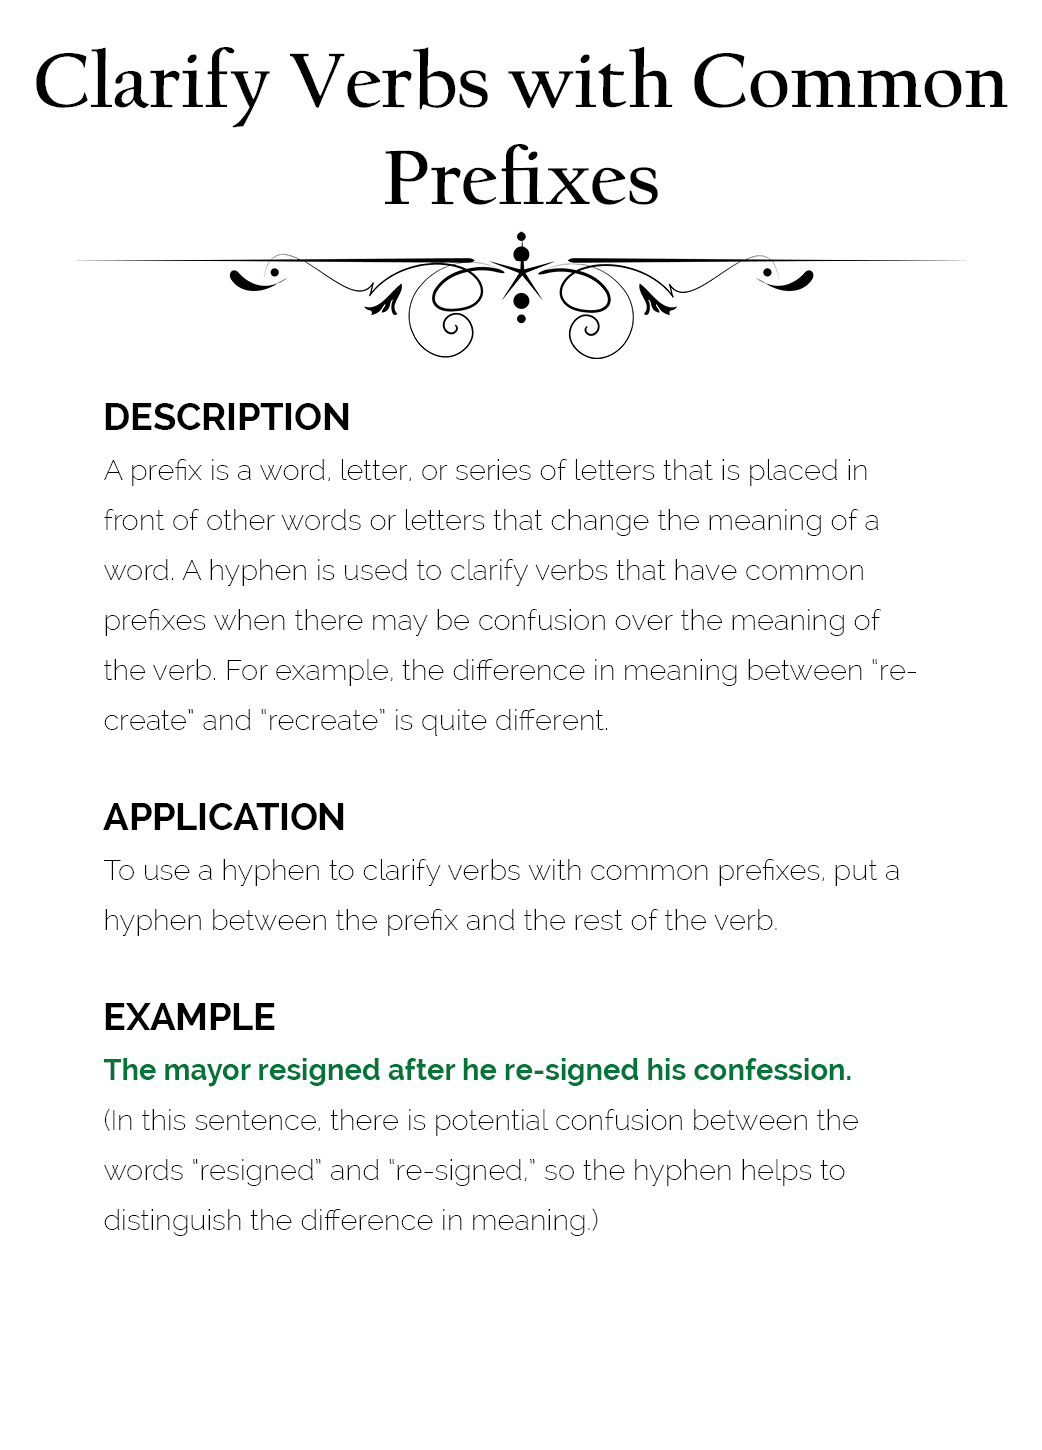 hyphen-use-3-clarifies-verbs-with-prefixes